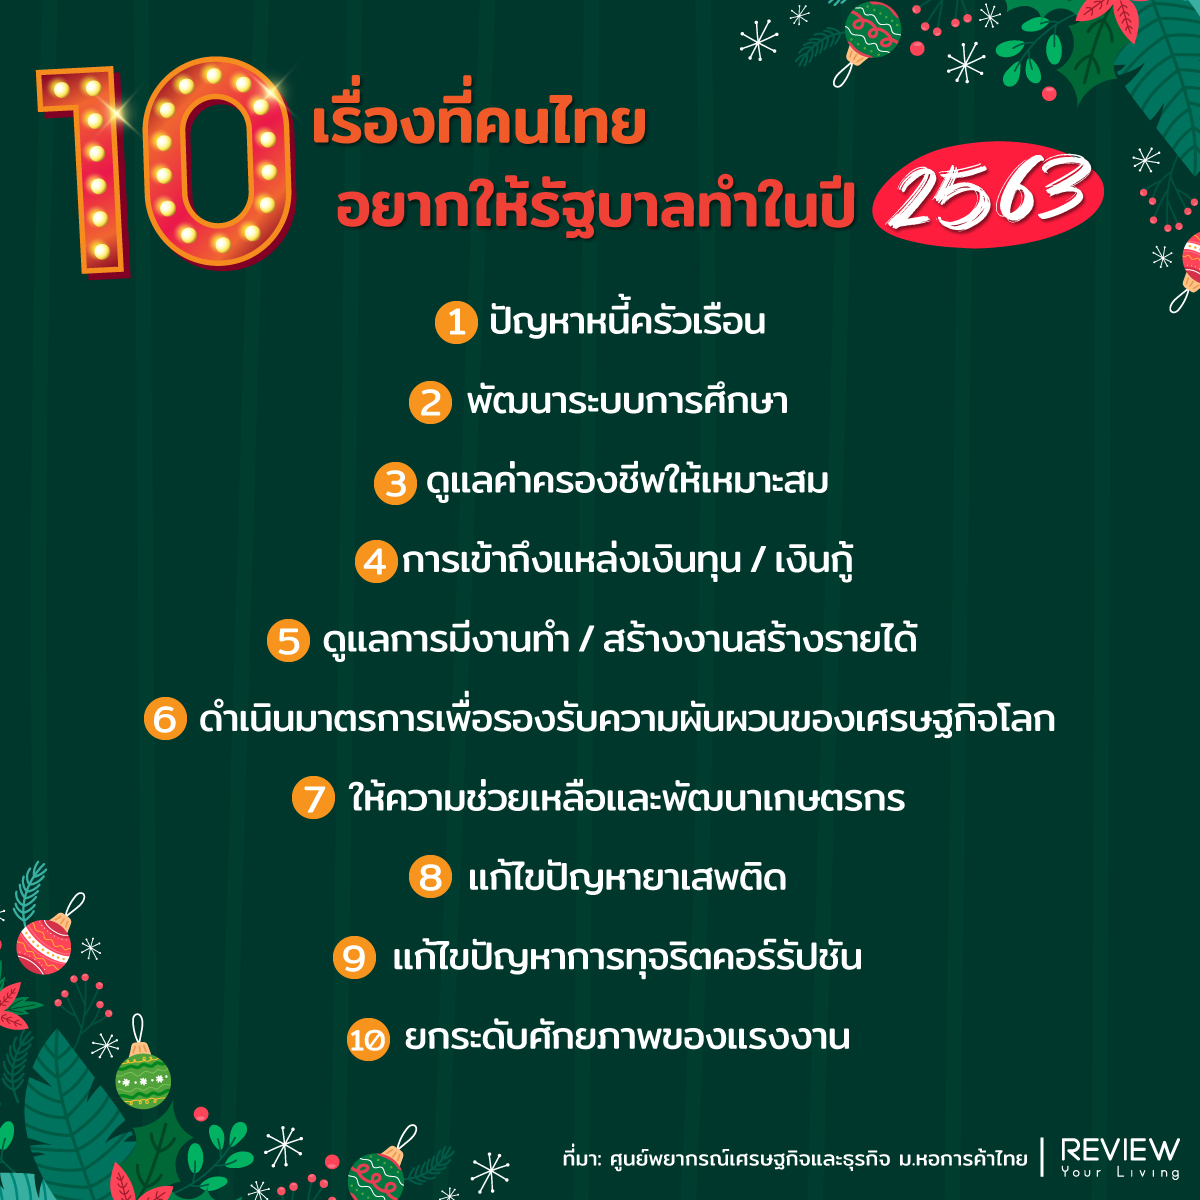 Top 10 Thai Want Government Improve